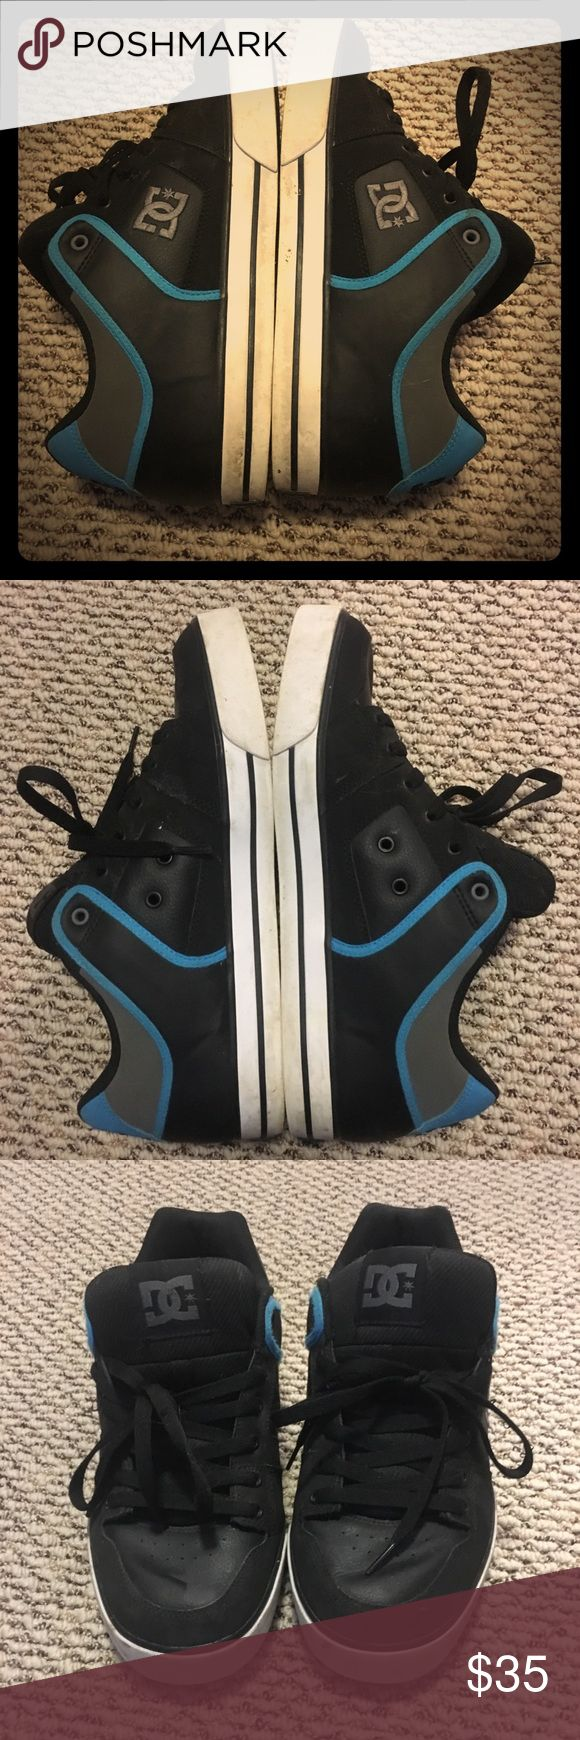 DC Skate shoes- Men's size 12 EUC - Men's size 12.  DC leather skate shoes. Electric blue, charcoal gray, and black with black laces. Great condition only worn a few times DC Shoes Sneakers